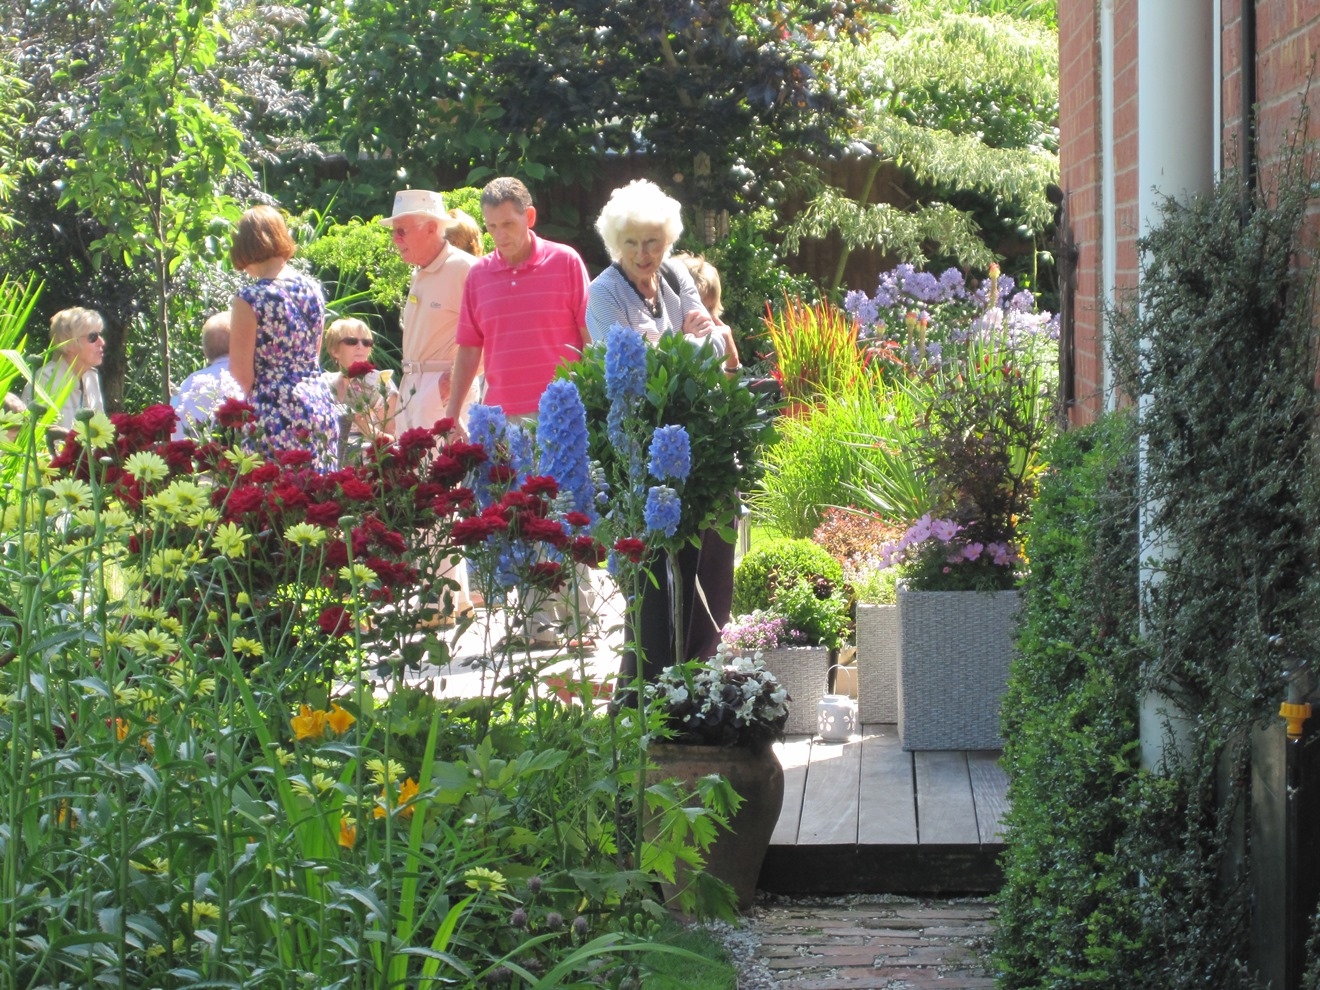 Angie barker 39 s open garden local life 247 for Local landscape gardeners